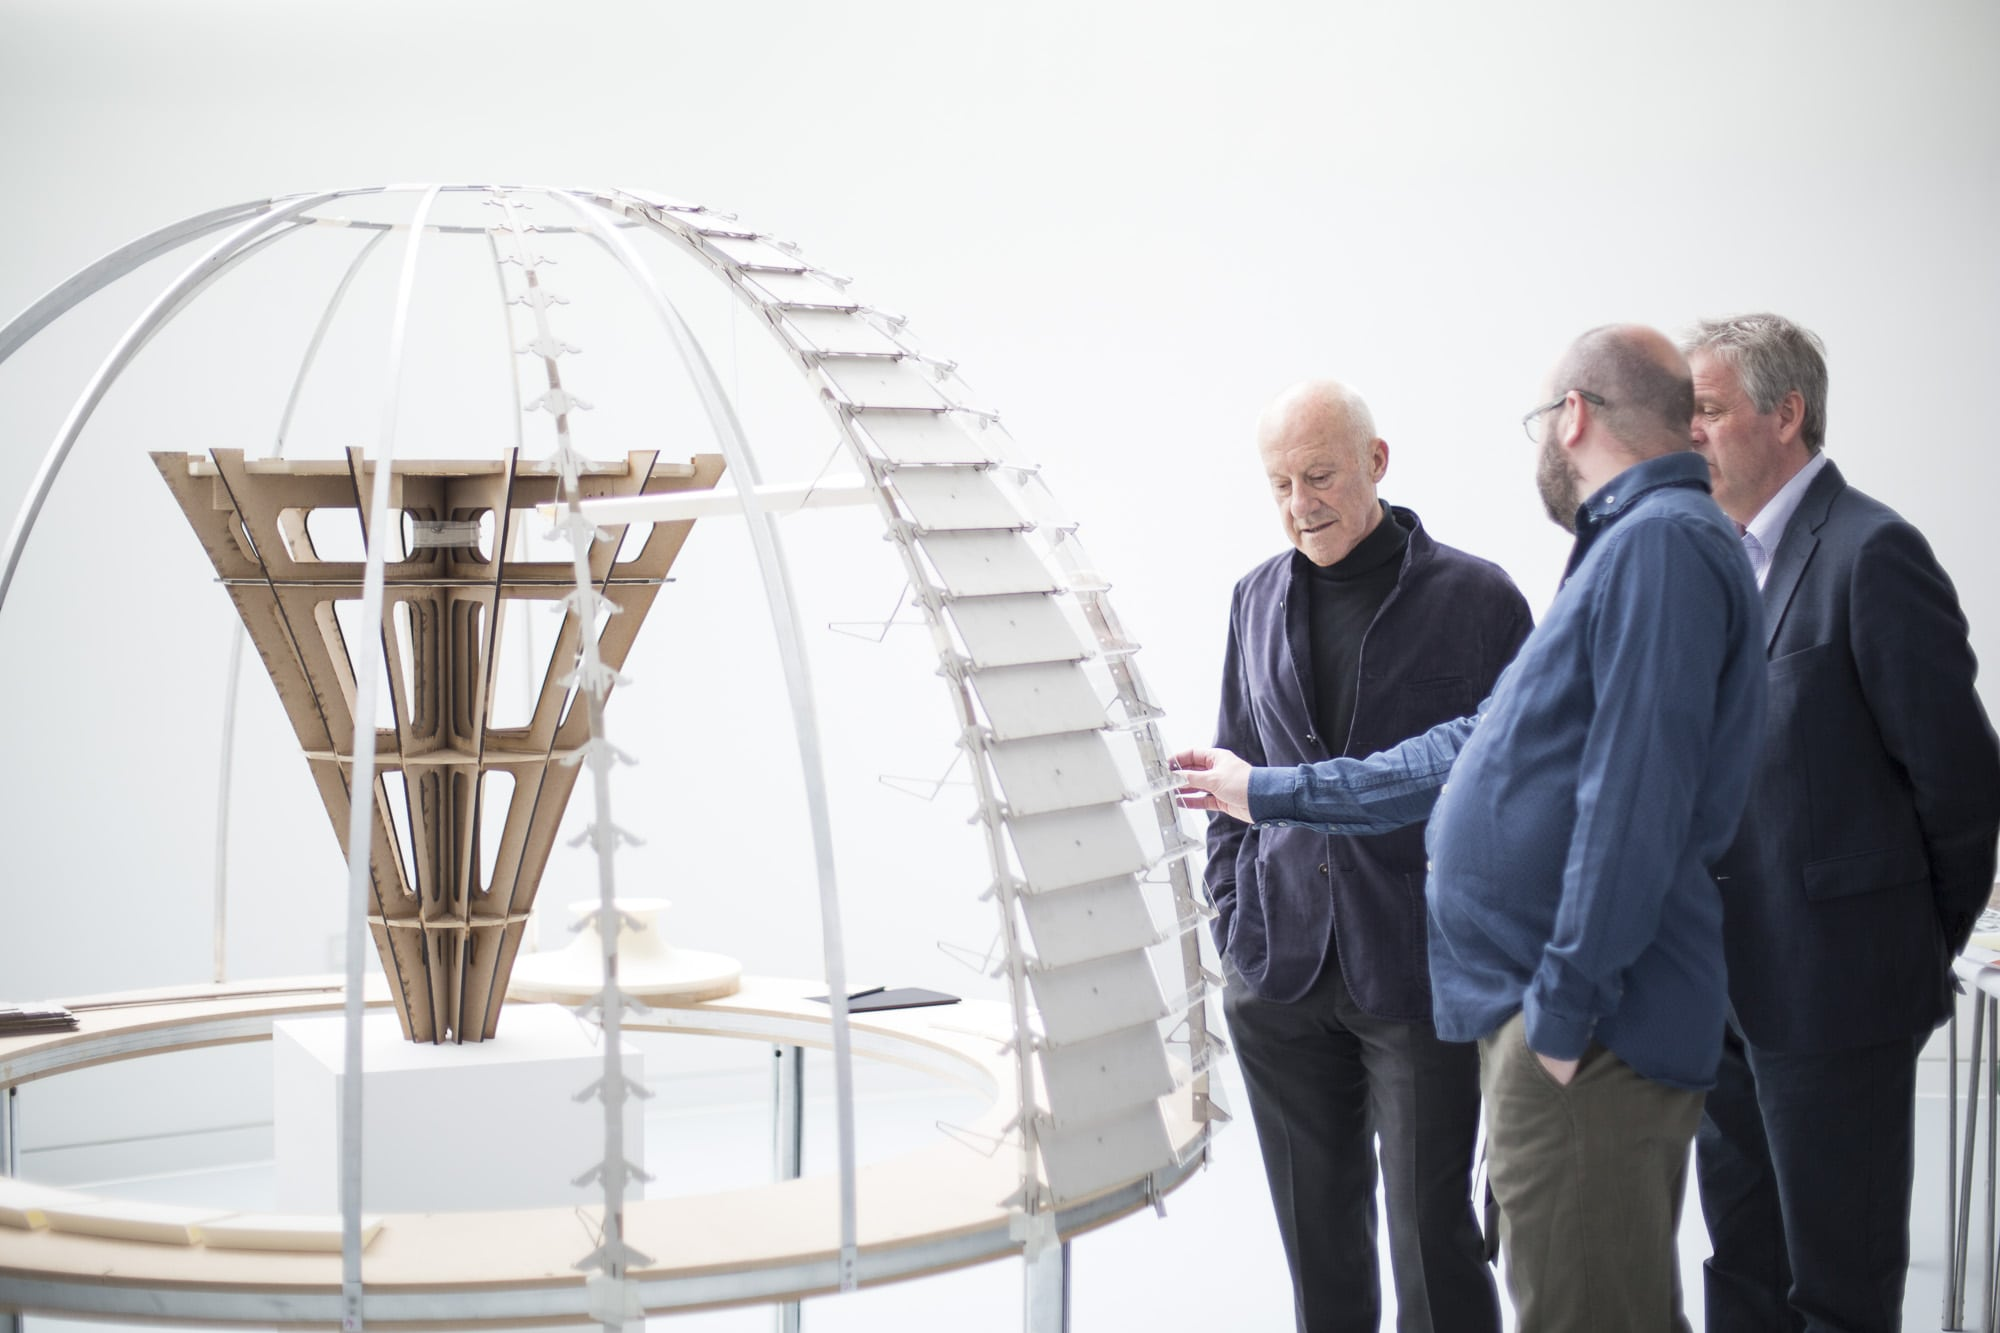 Lord Norman Foster commissions Modelmaking students to recreate lost model